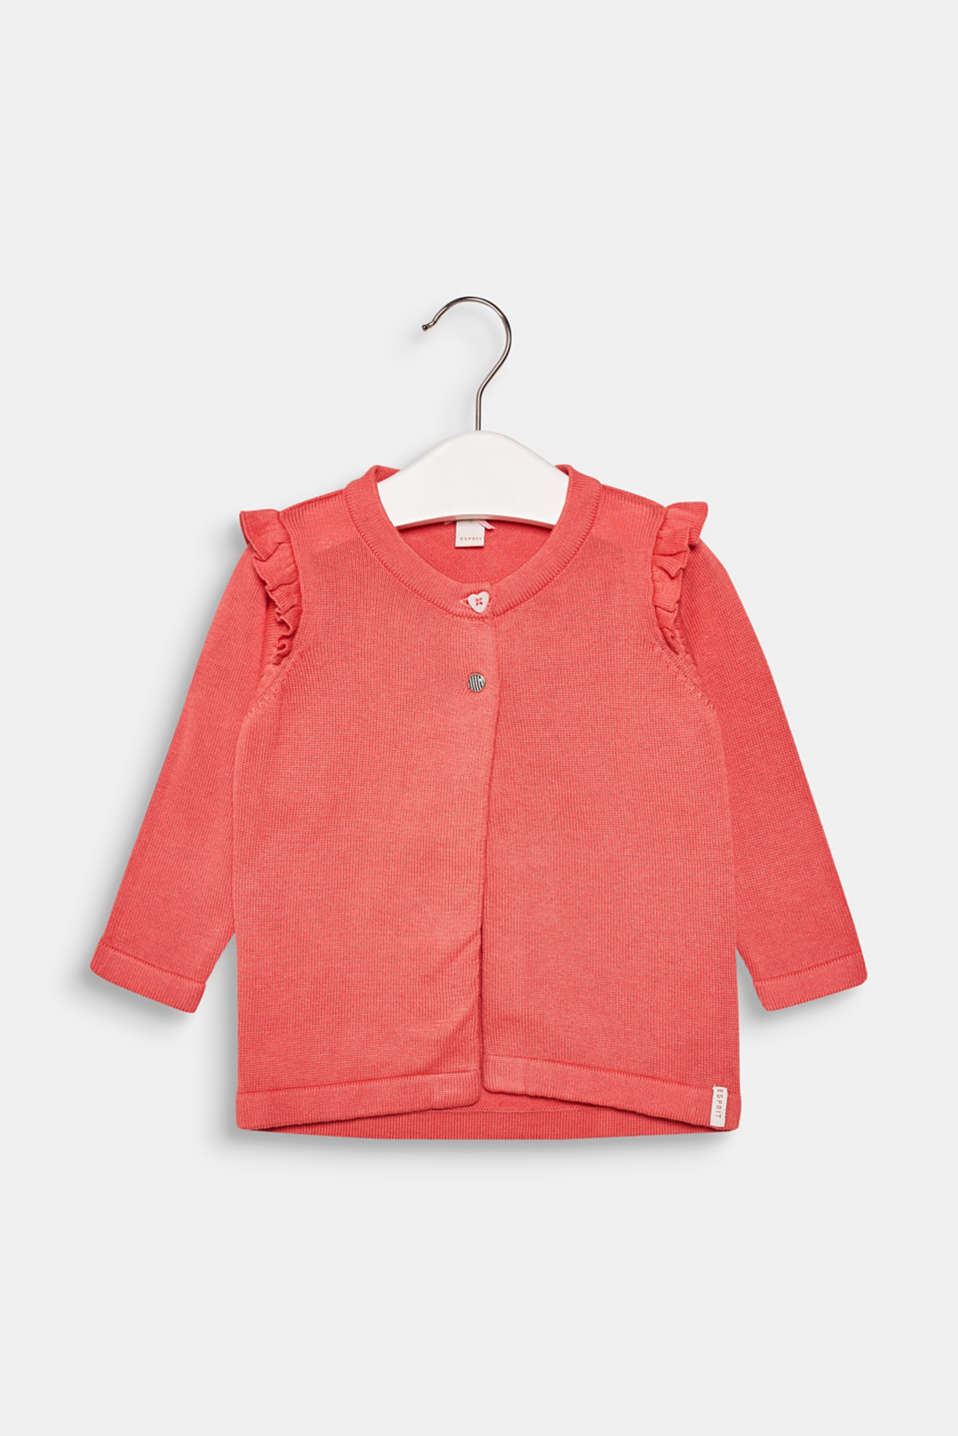 Esprit - Fine knit cardigan with frills, 100% cotton